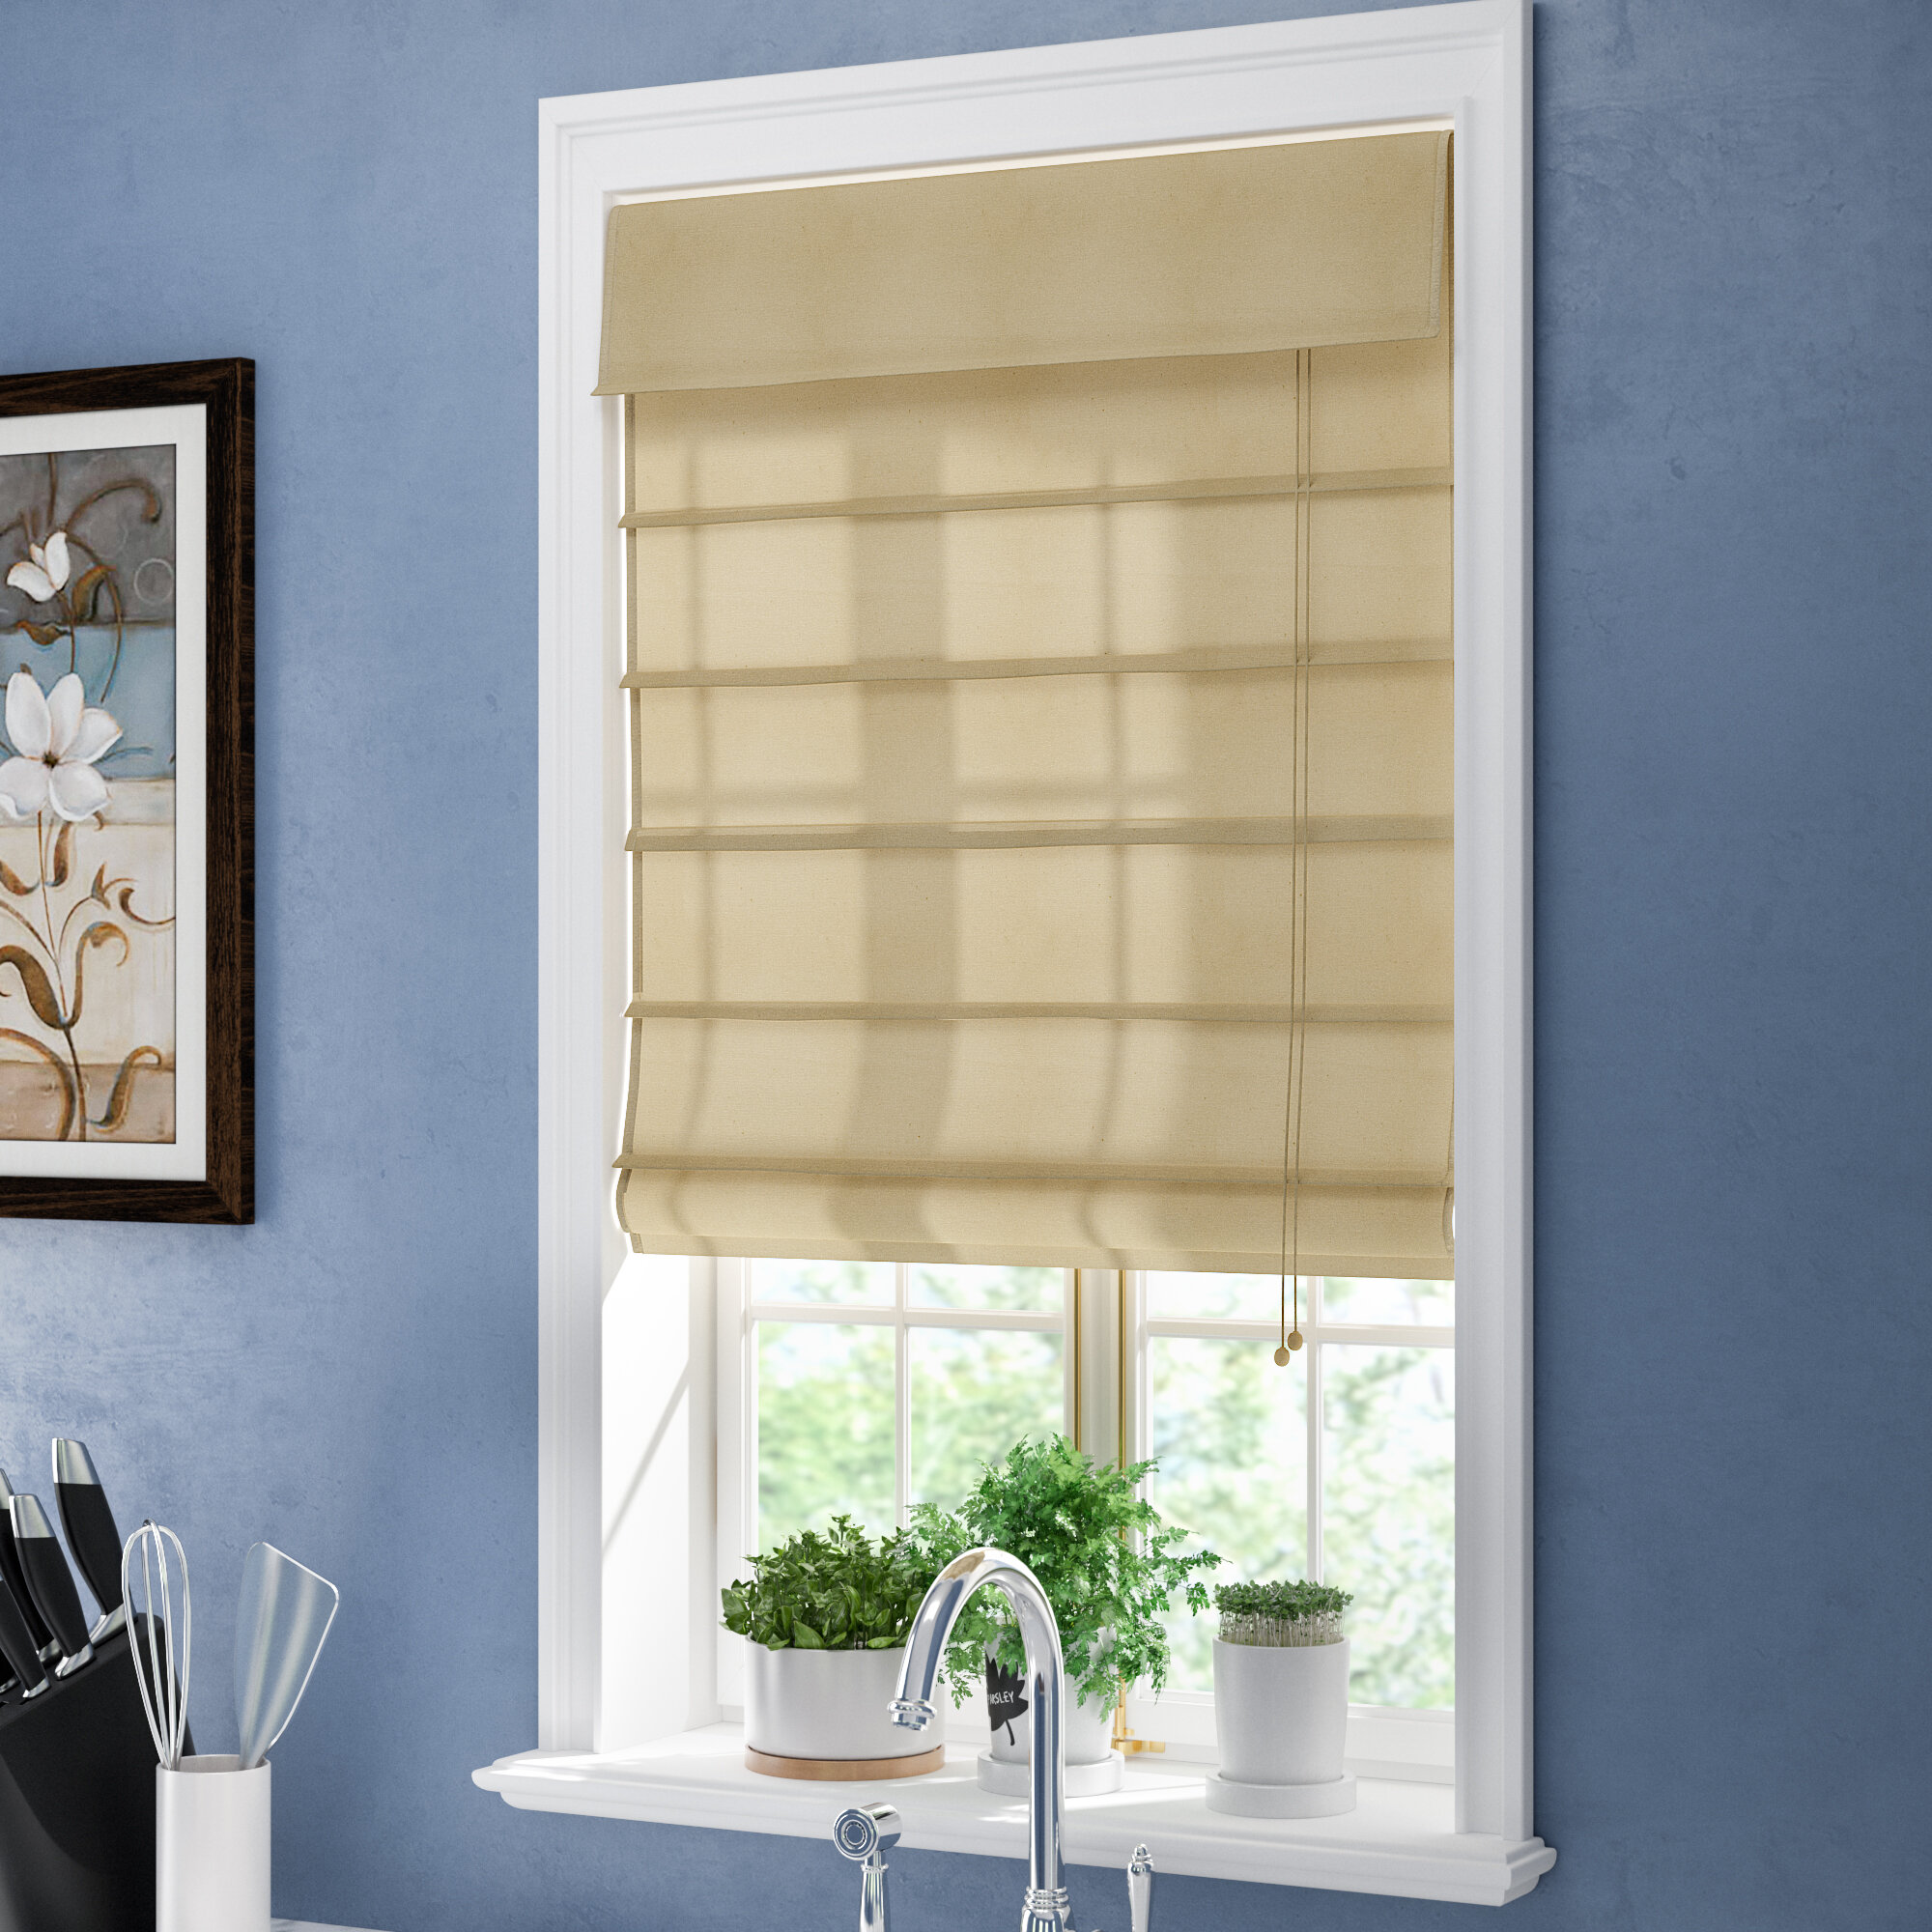 window our inspiration md annapolis serving for shade thank you mcfeely roman valance shades fashions bedroom neighbor visiting gallery